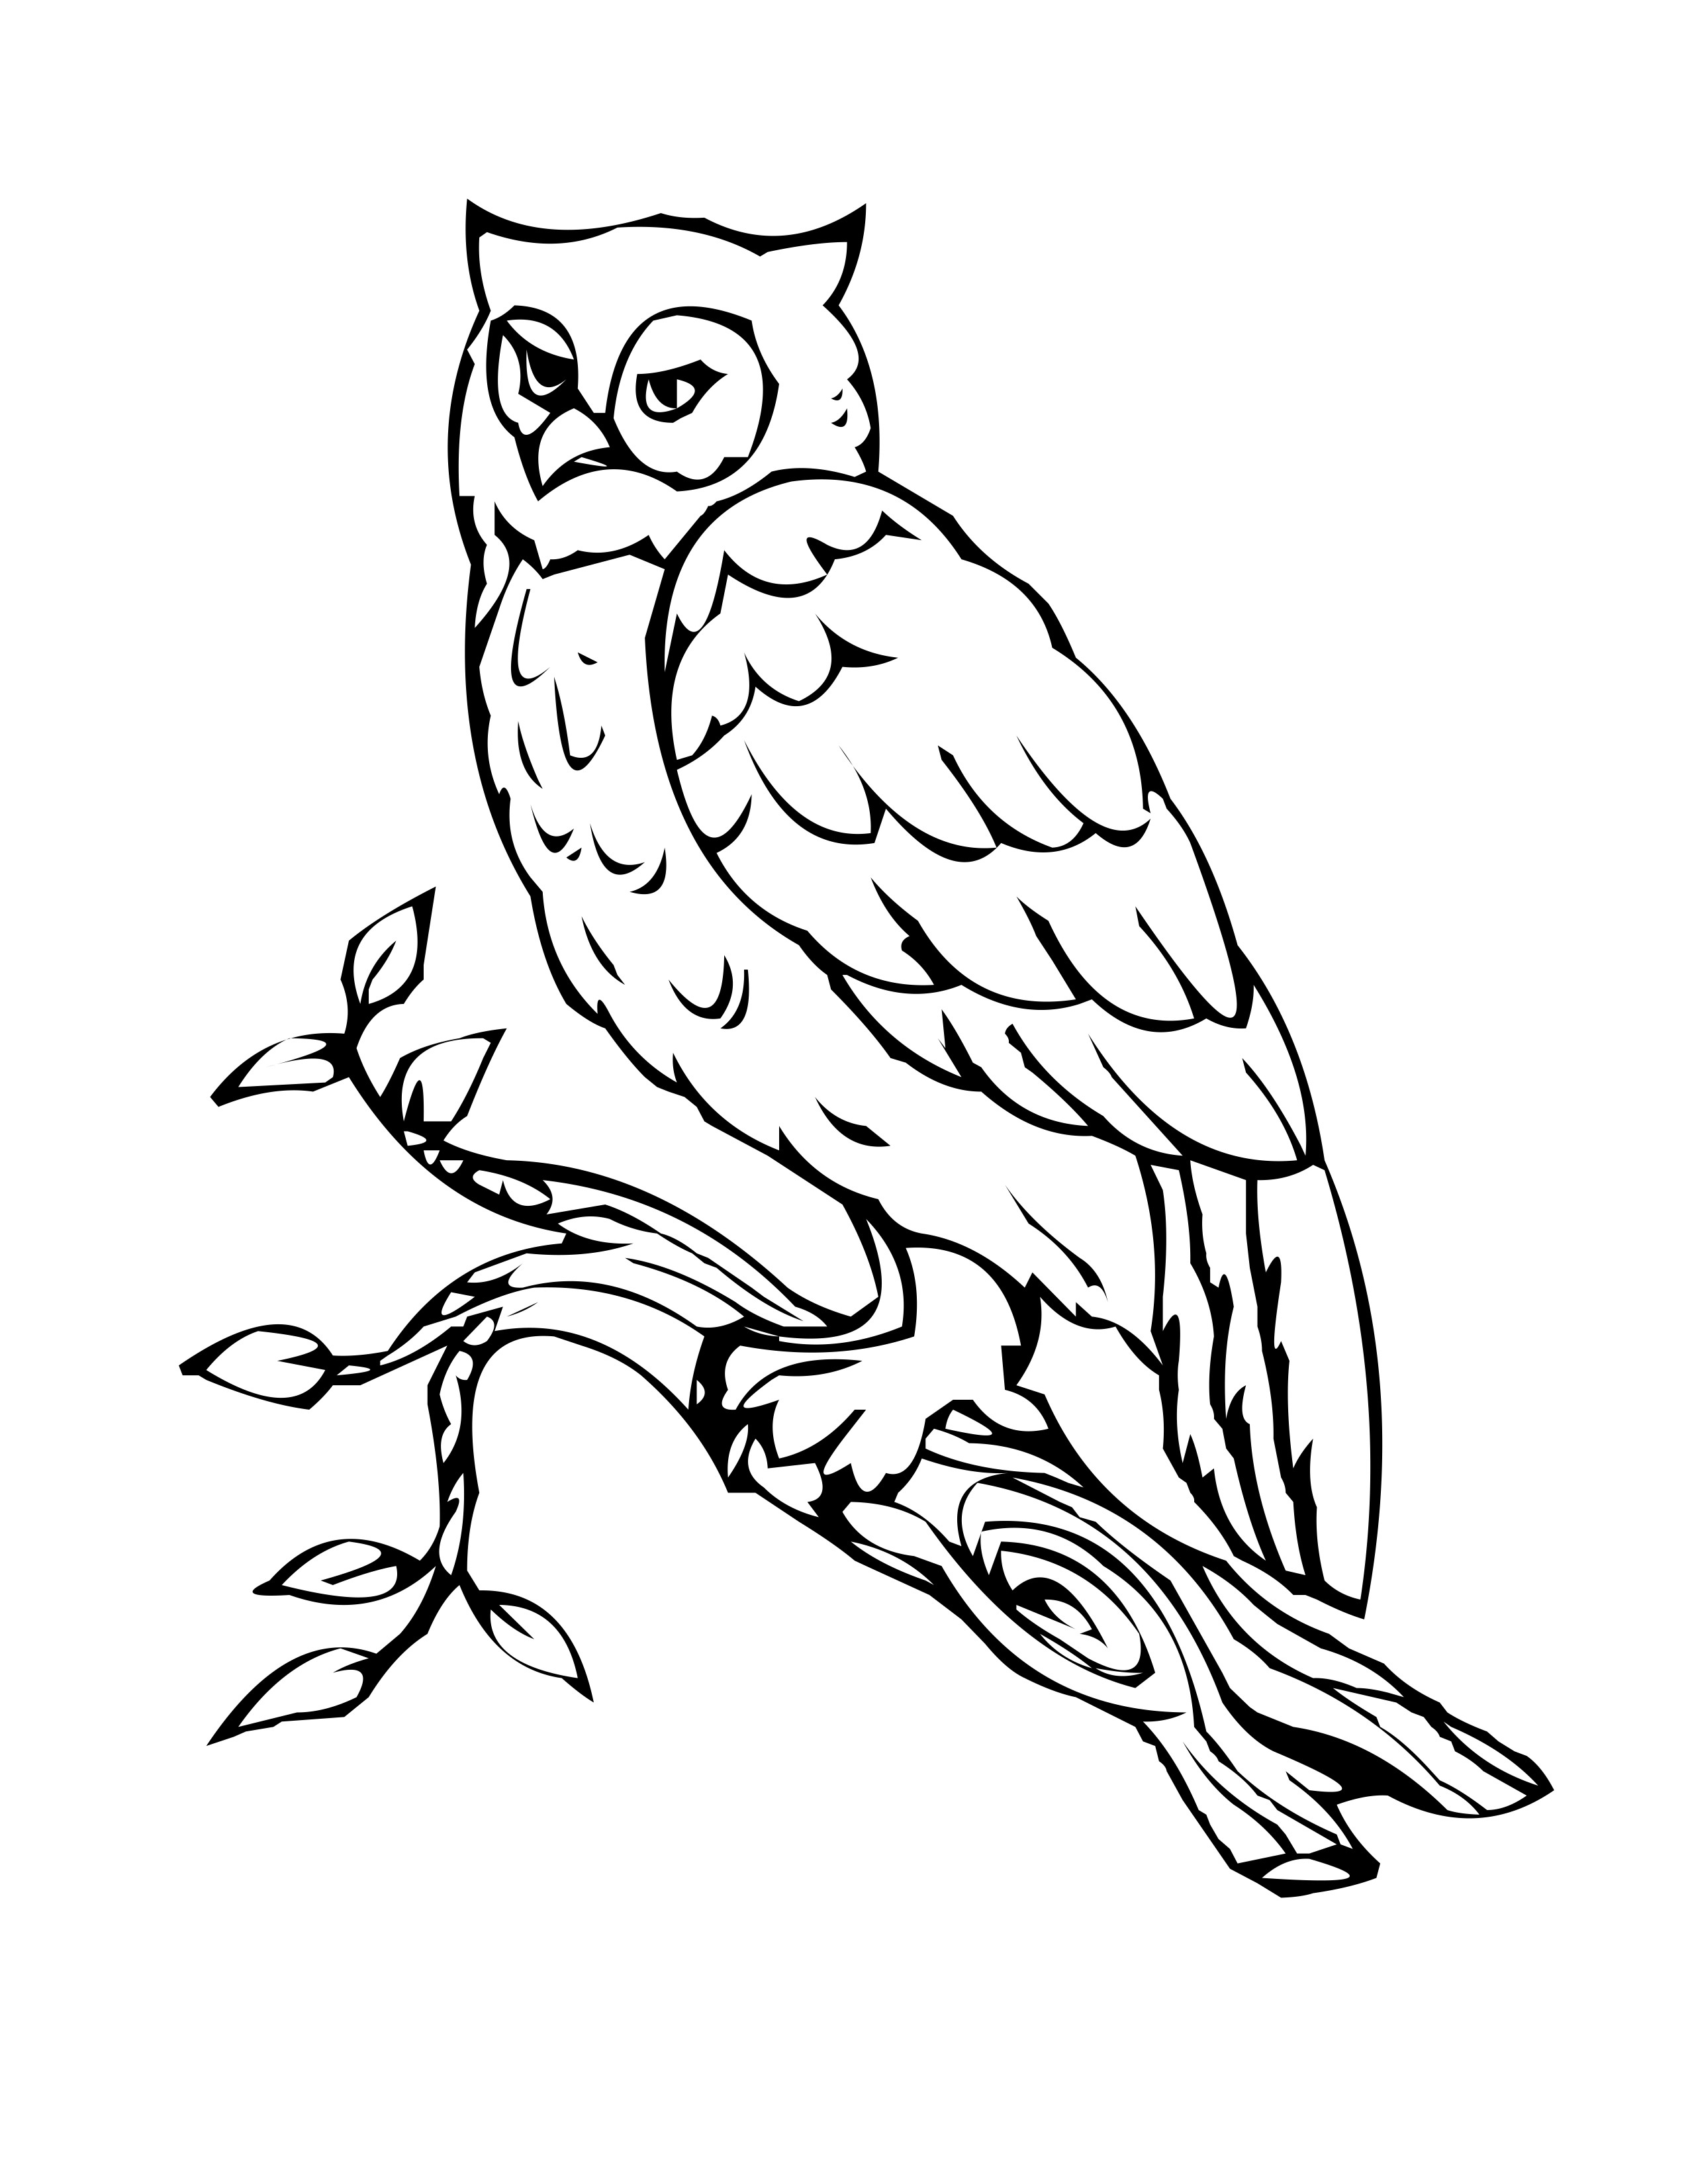 bird coloring images printable birds coloring pages for adults realistic coloring bird images